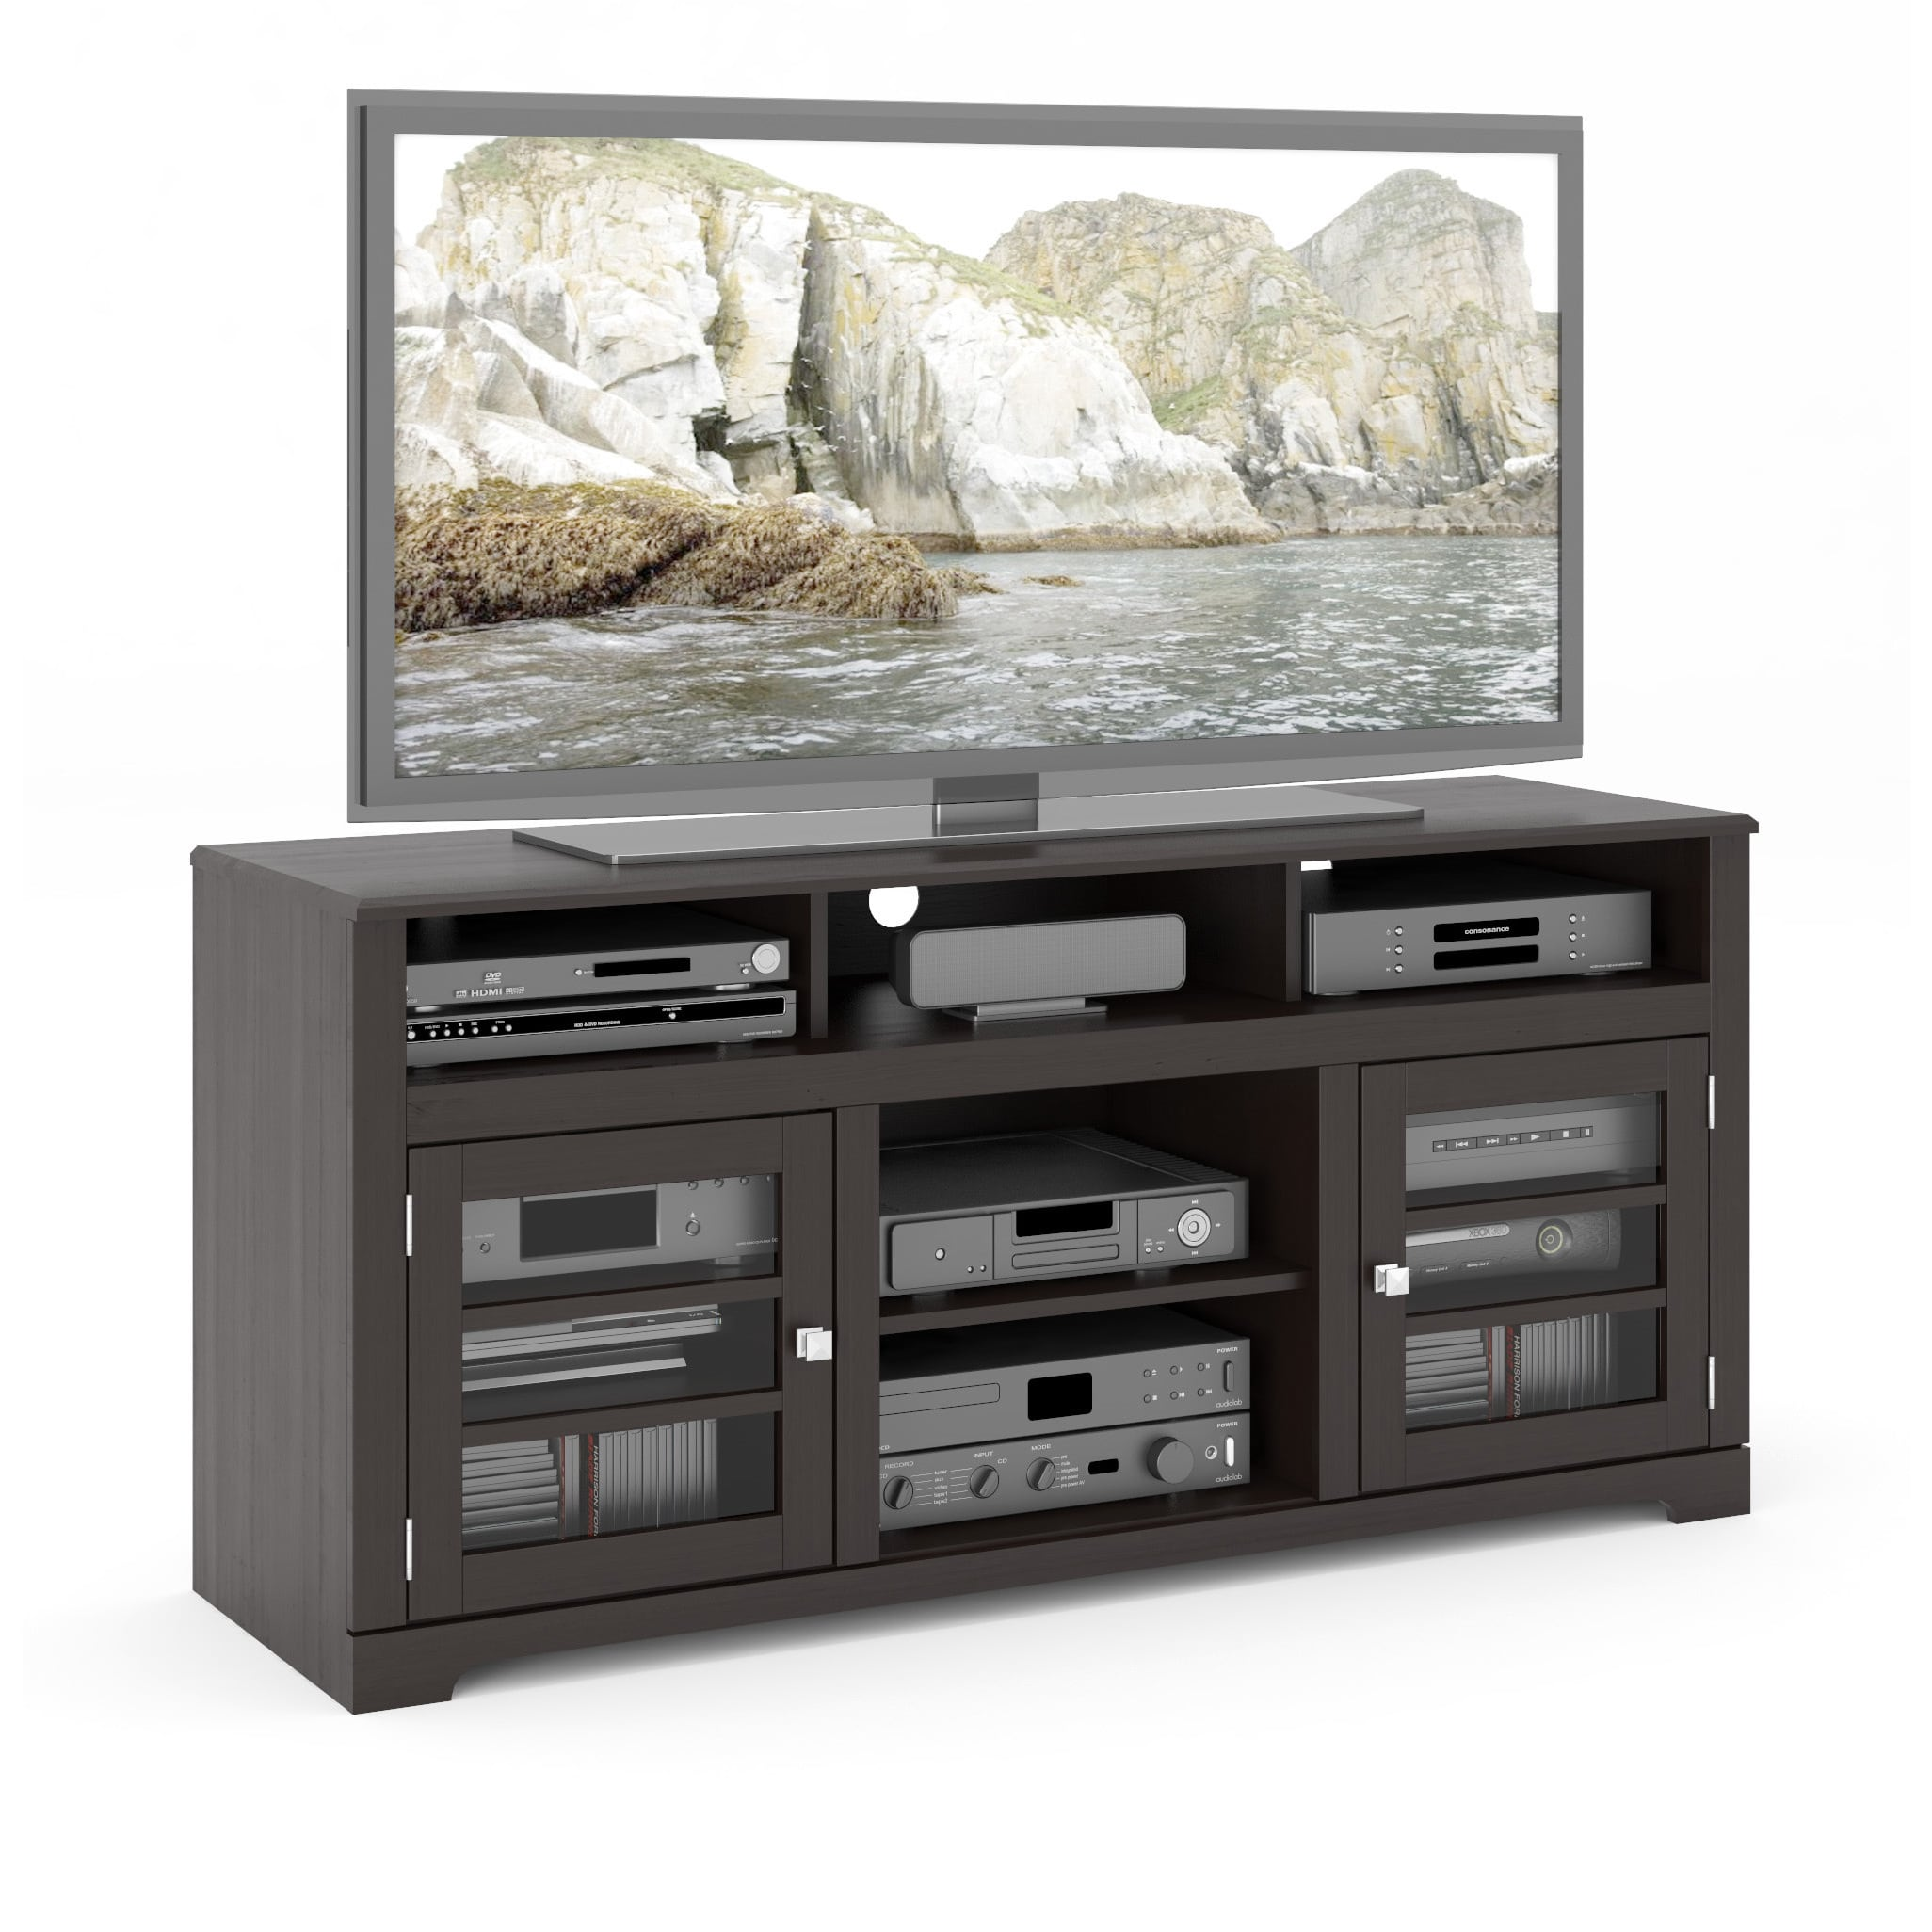 "West Lake 60"" Television Bench in Mocha Black"